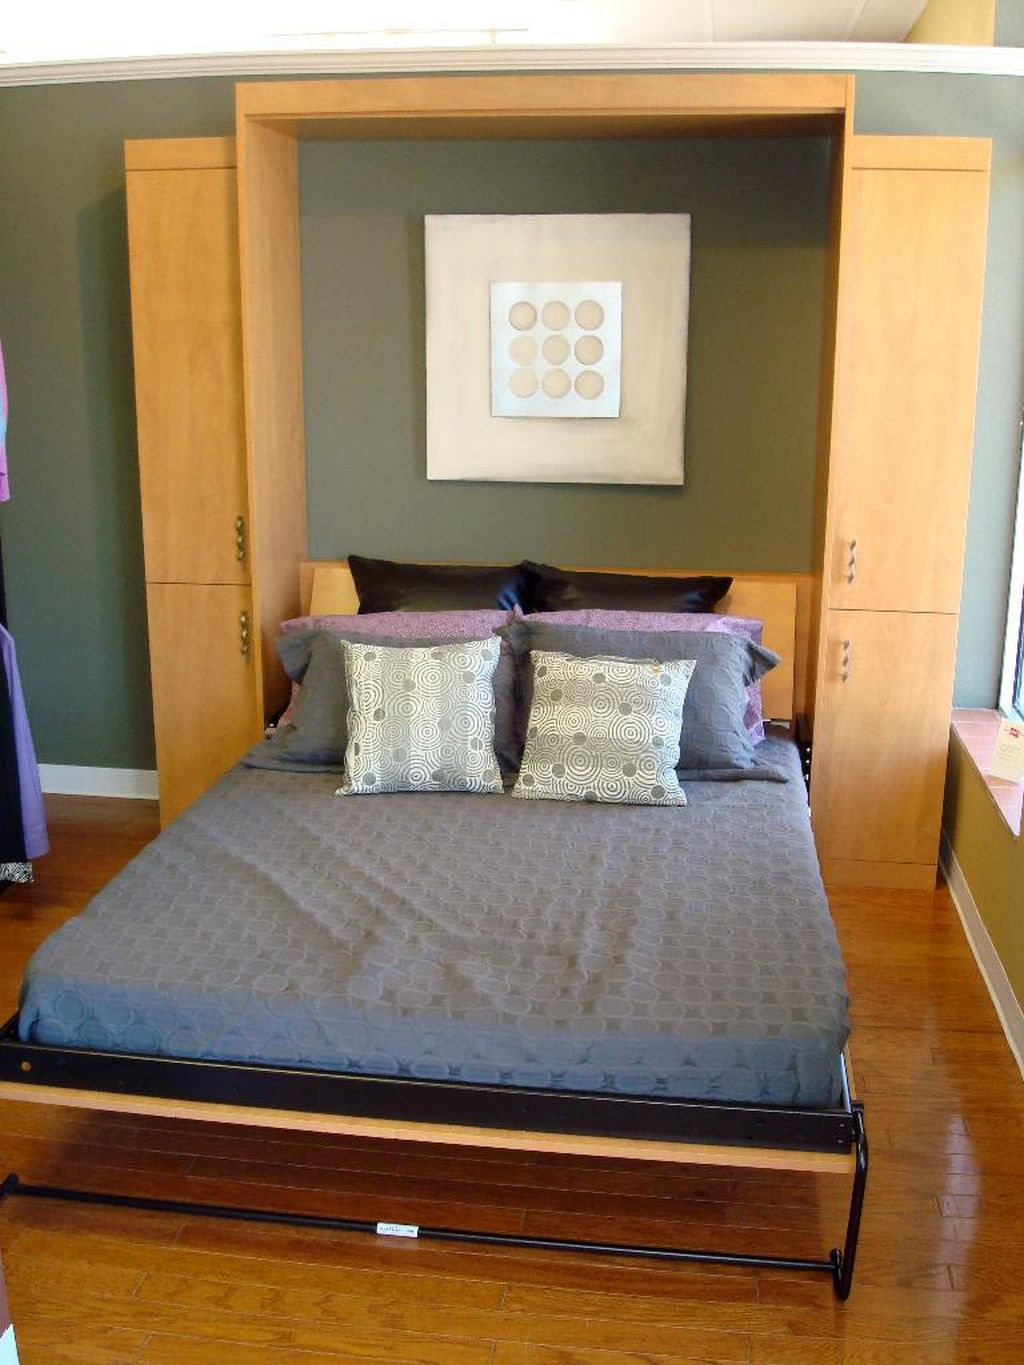 20 Space-Saving Murphy Bed Design Ideas for Small Rooms on Small Rooms  id=15167